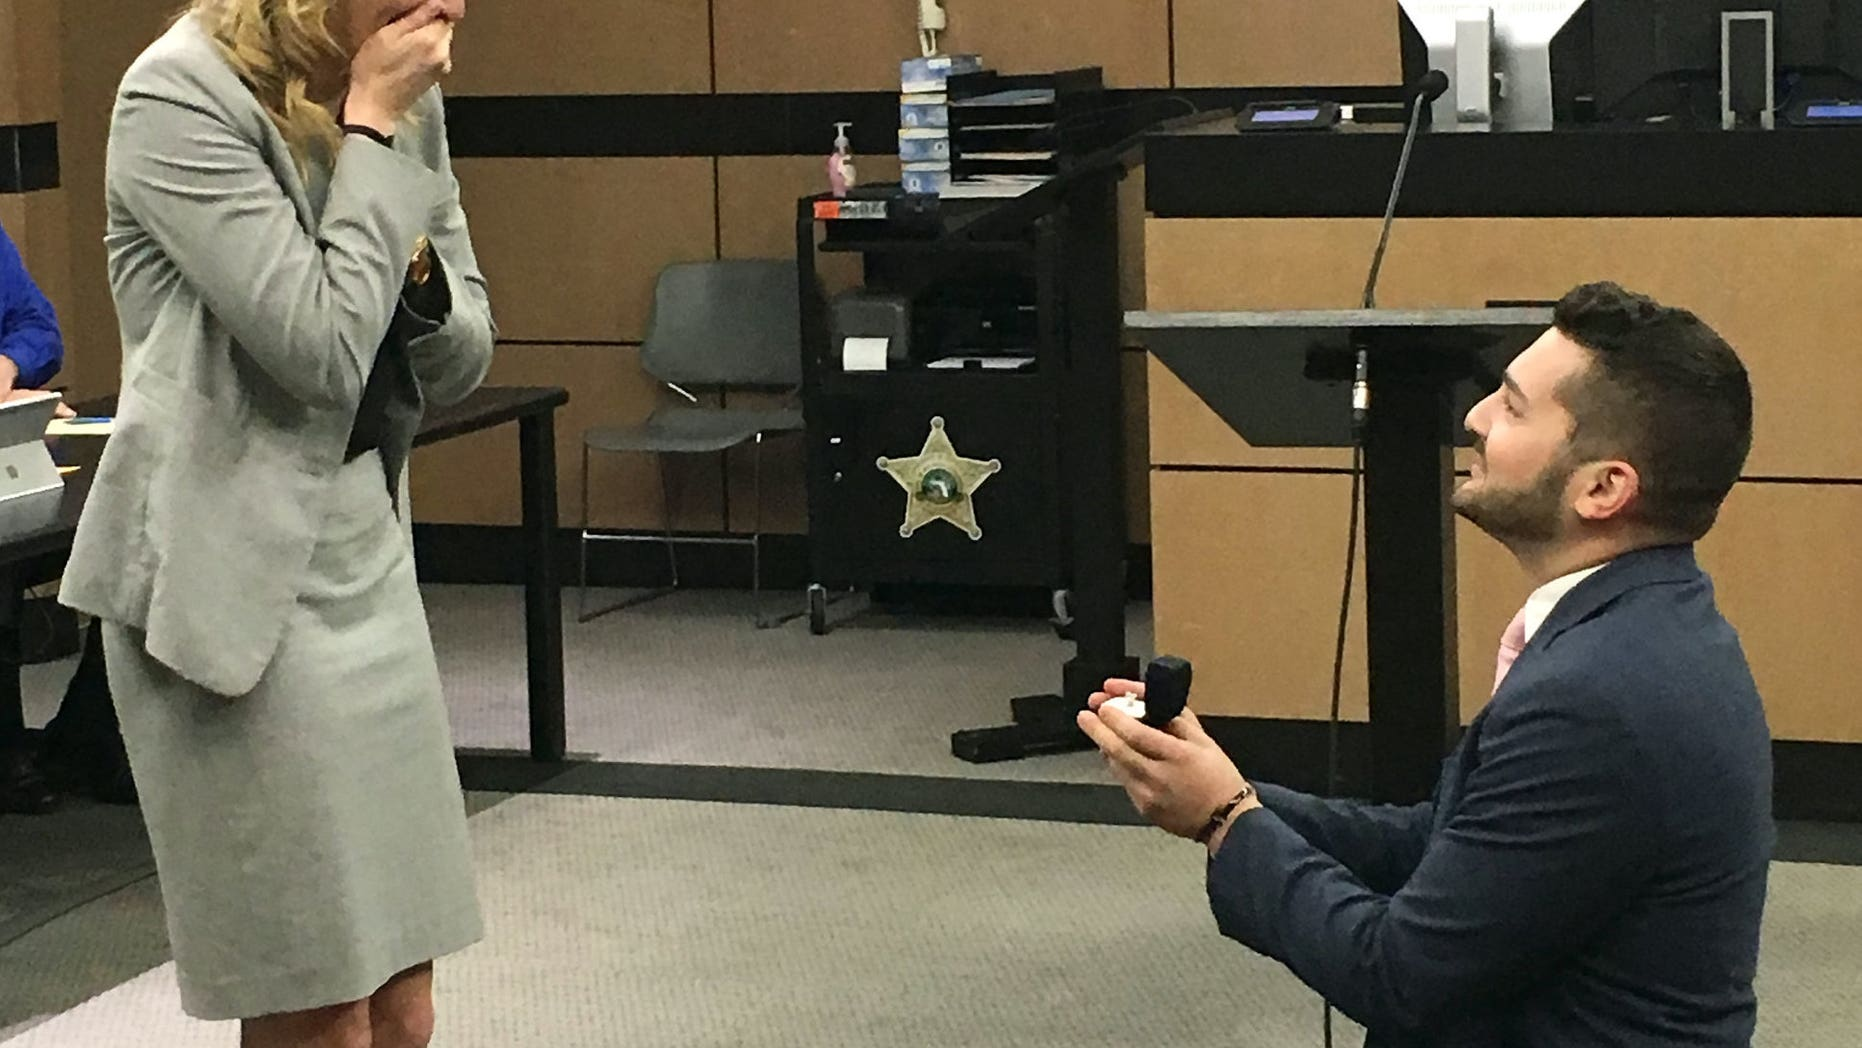 Brandon Dinetz constructed an elaborate fake legal trial at the Palm Beach County Courthouse to propose to his fellow legal-eagle girlfriend Jen